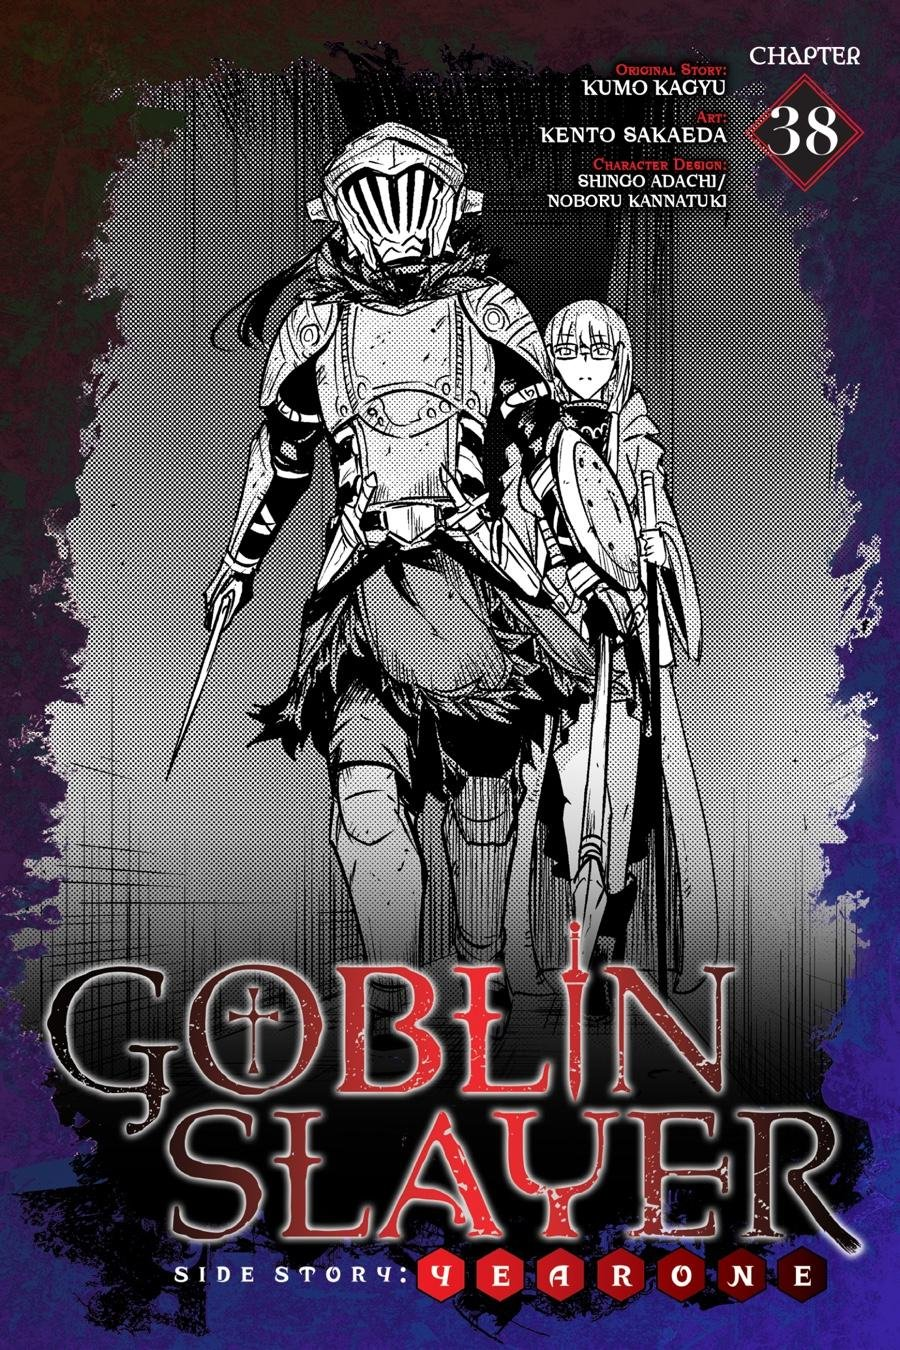 Manga Goblin Slayer Side Story: Year One - Chapter 38 Page 1